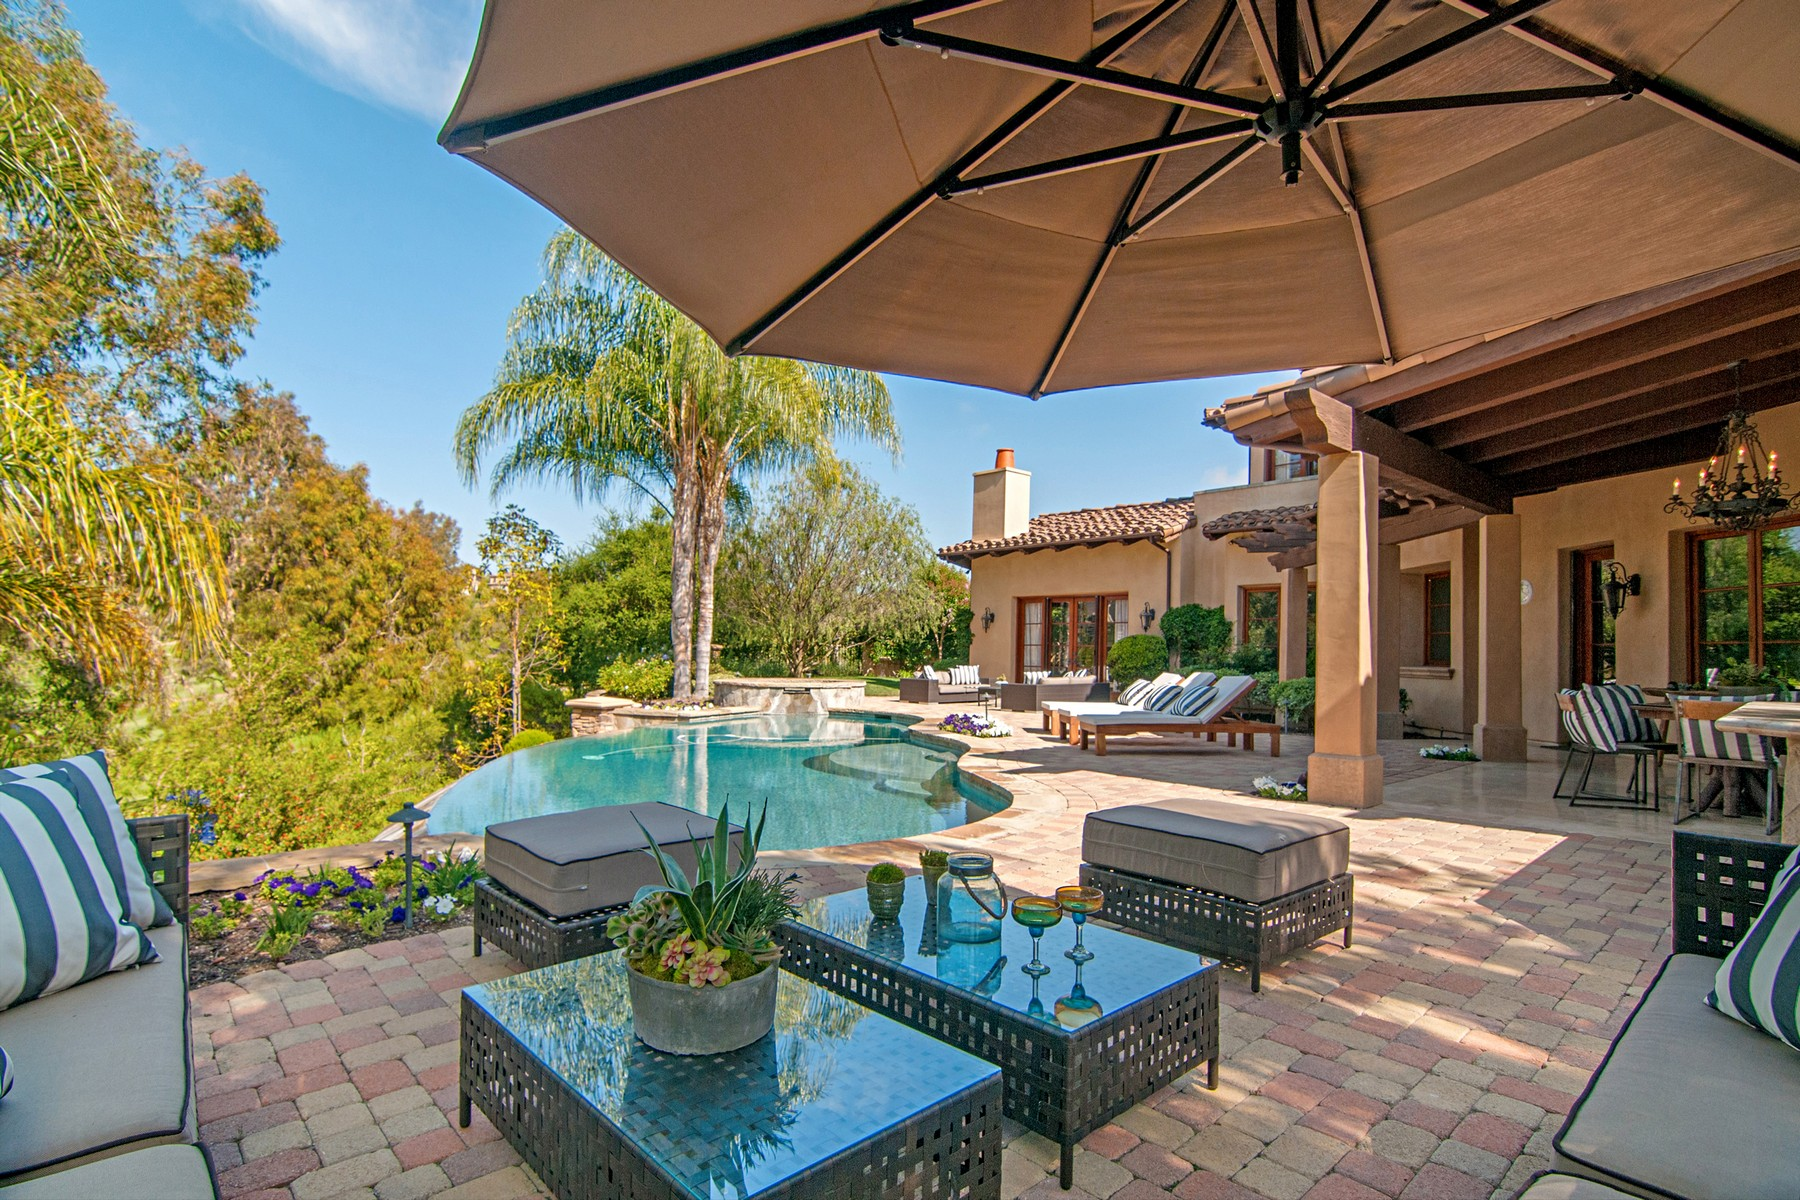 Additional photo for property listing at 7758 - 7760 Road To Zanzibar  Rancho Santa Fe, Калифорния 92127 Соединенные Штаты